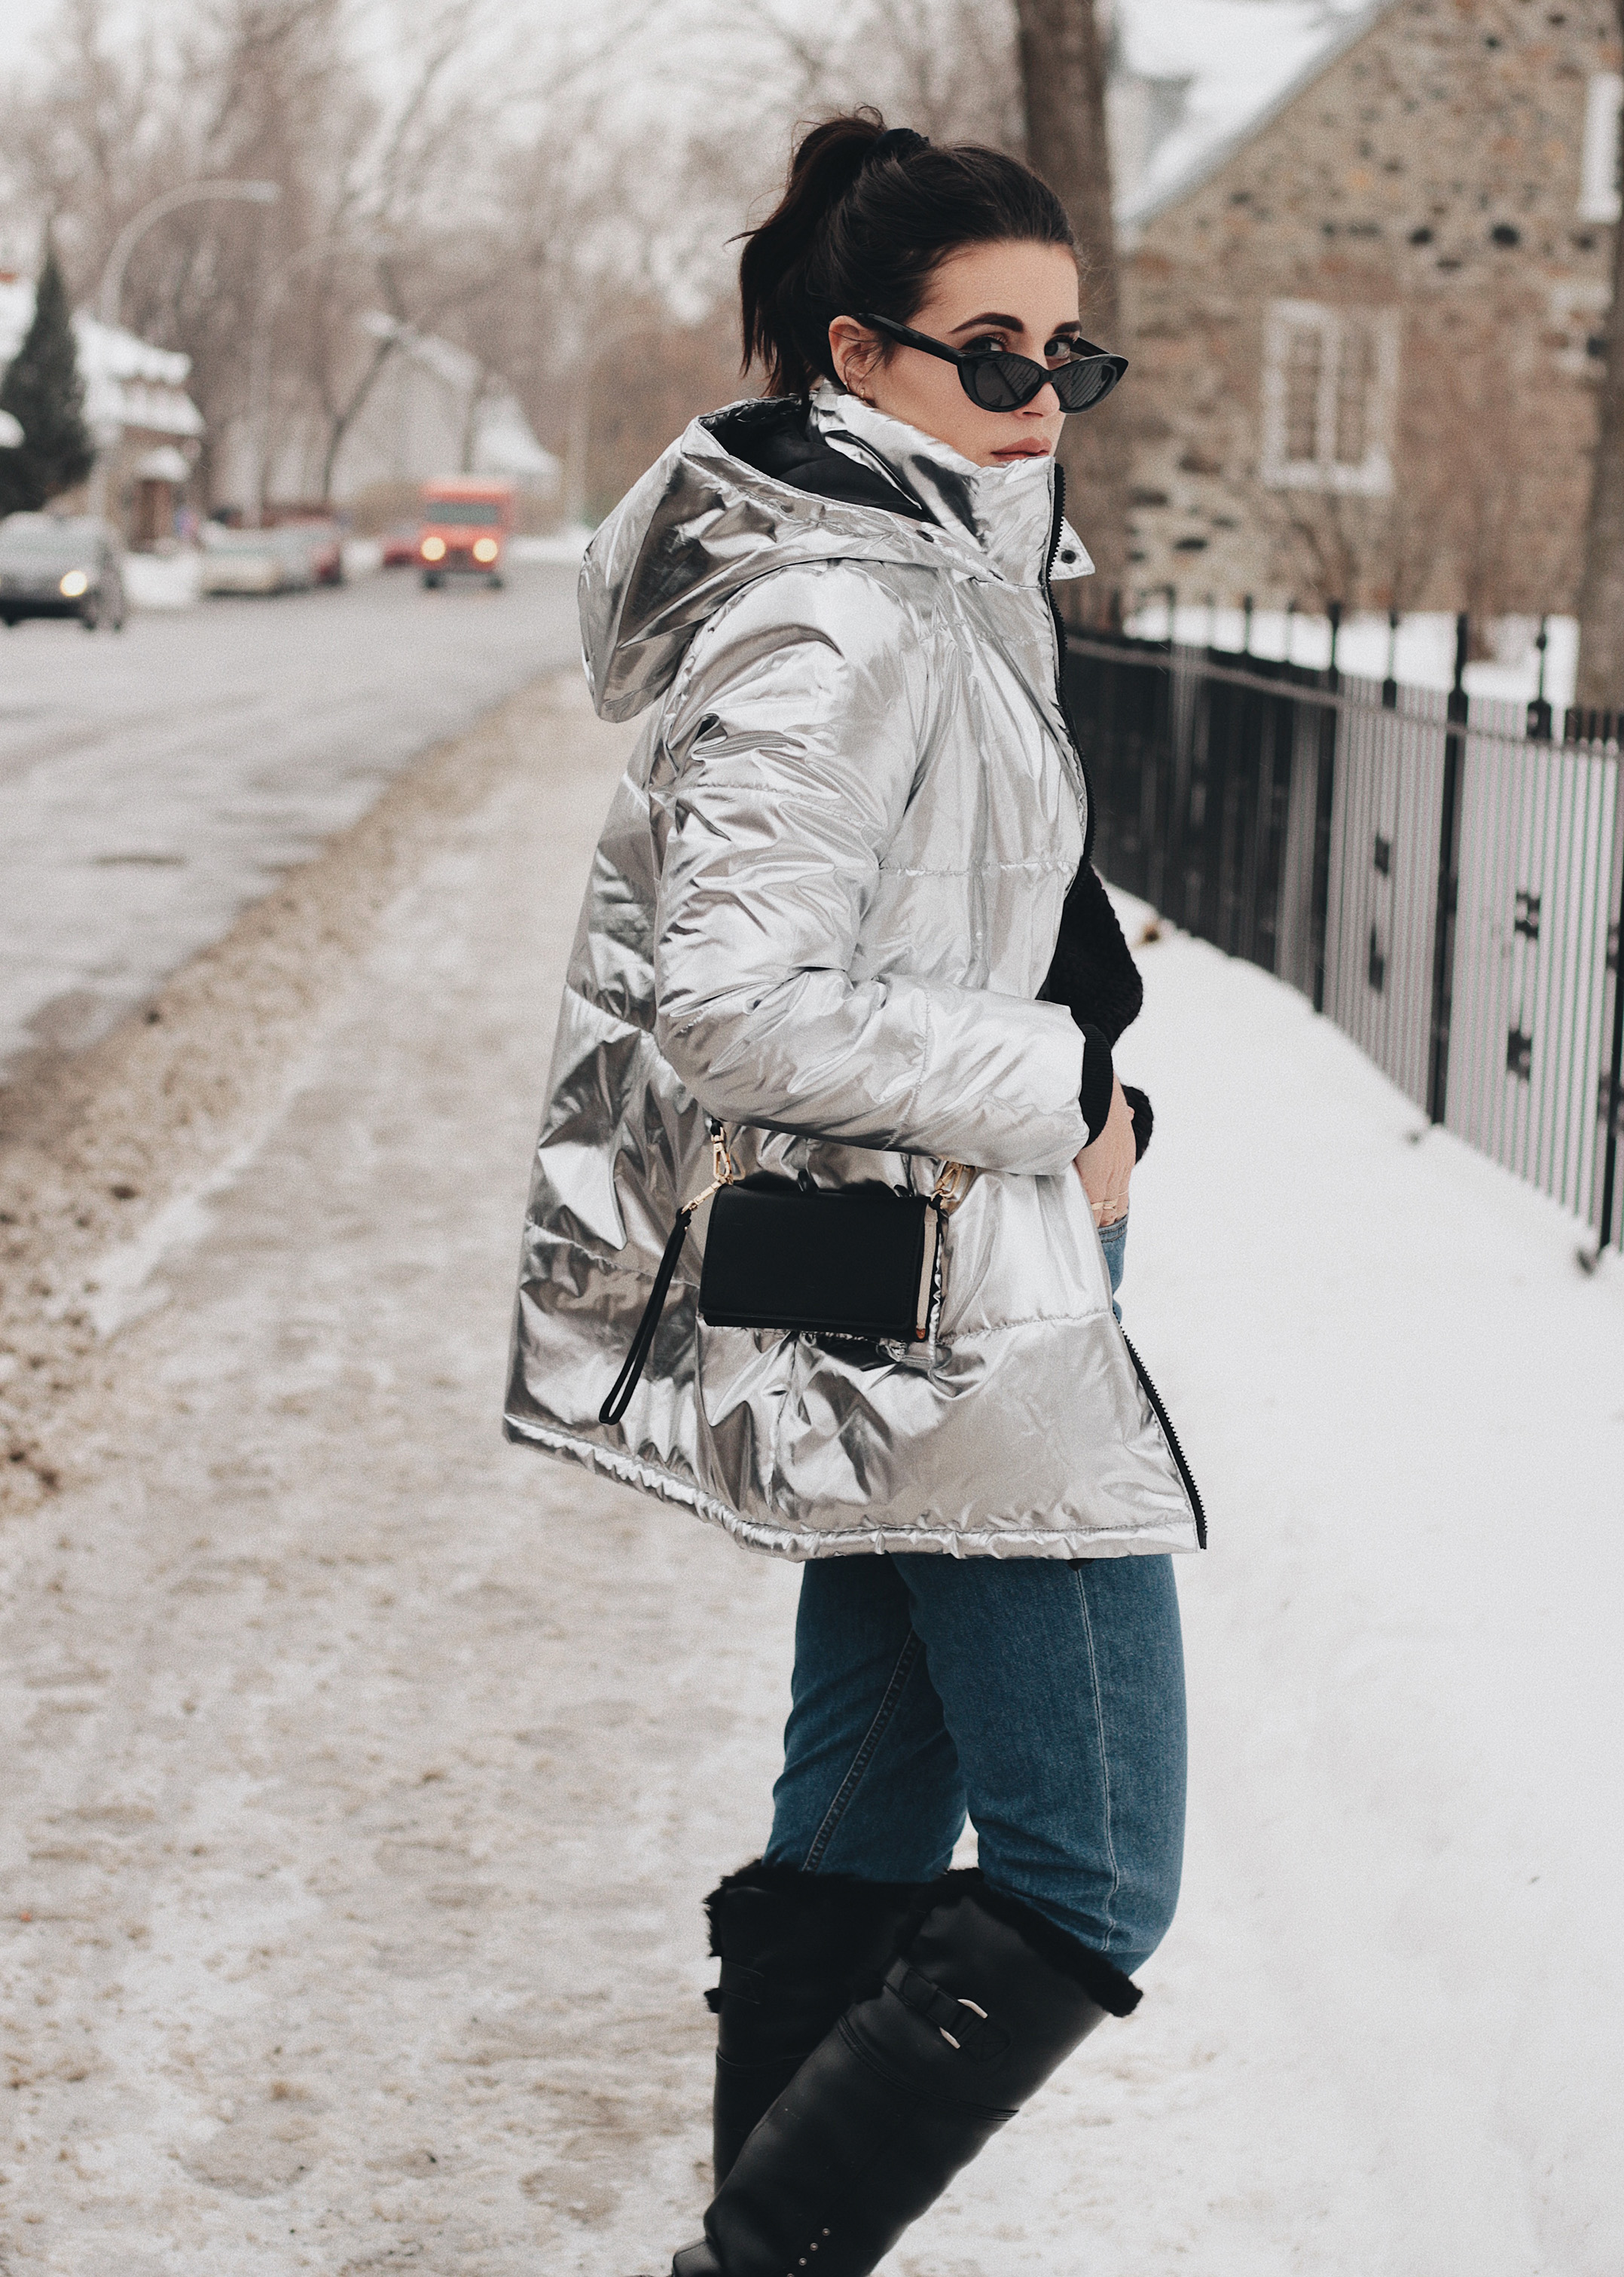 388b359ae4 Metallic puffer jacket  Forever21   Sunglasses  Asos   Boots  Blondo    Jeans  Only   Sweater  H M   Crossbody wallet bag  Zara